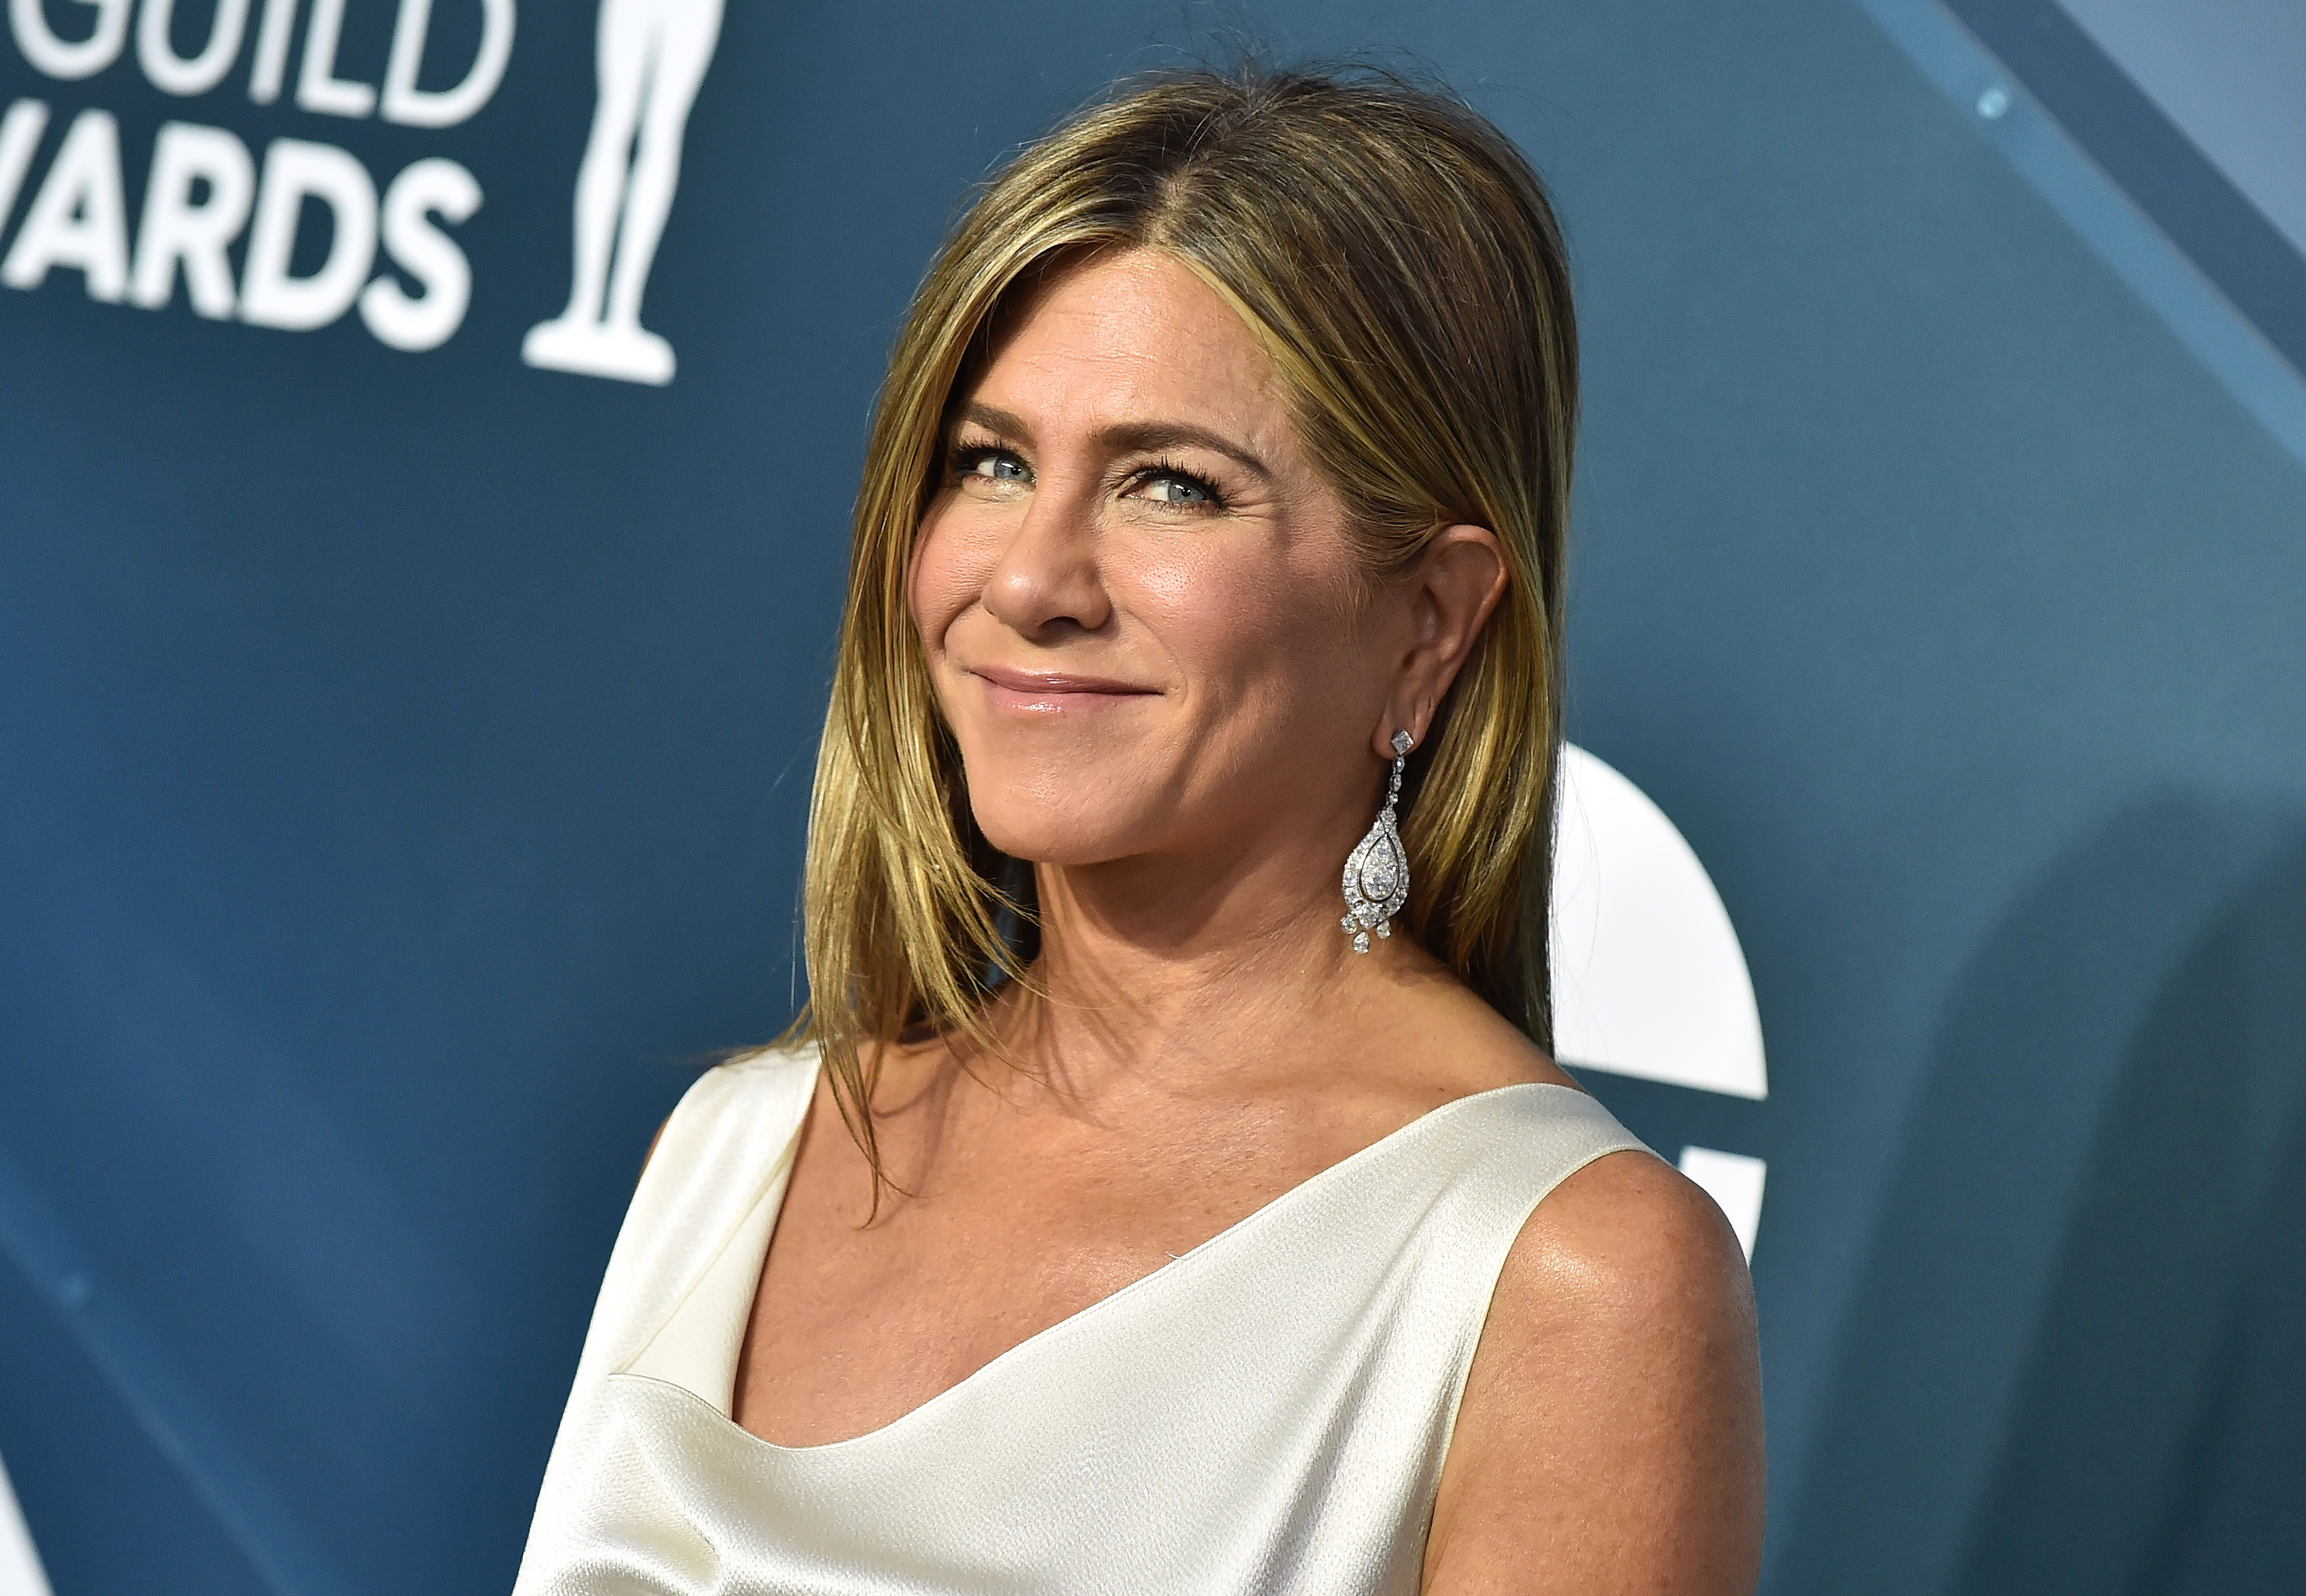 Jennifer Aniston's Auctioning off a Nude Photo of Herself for Charity